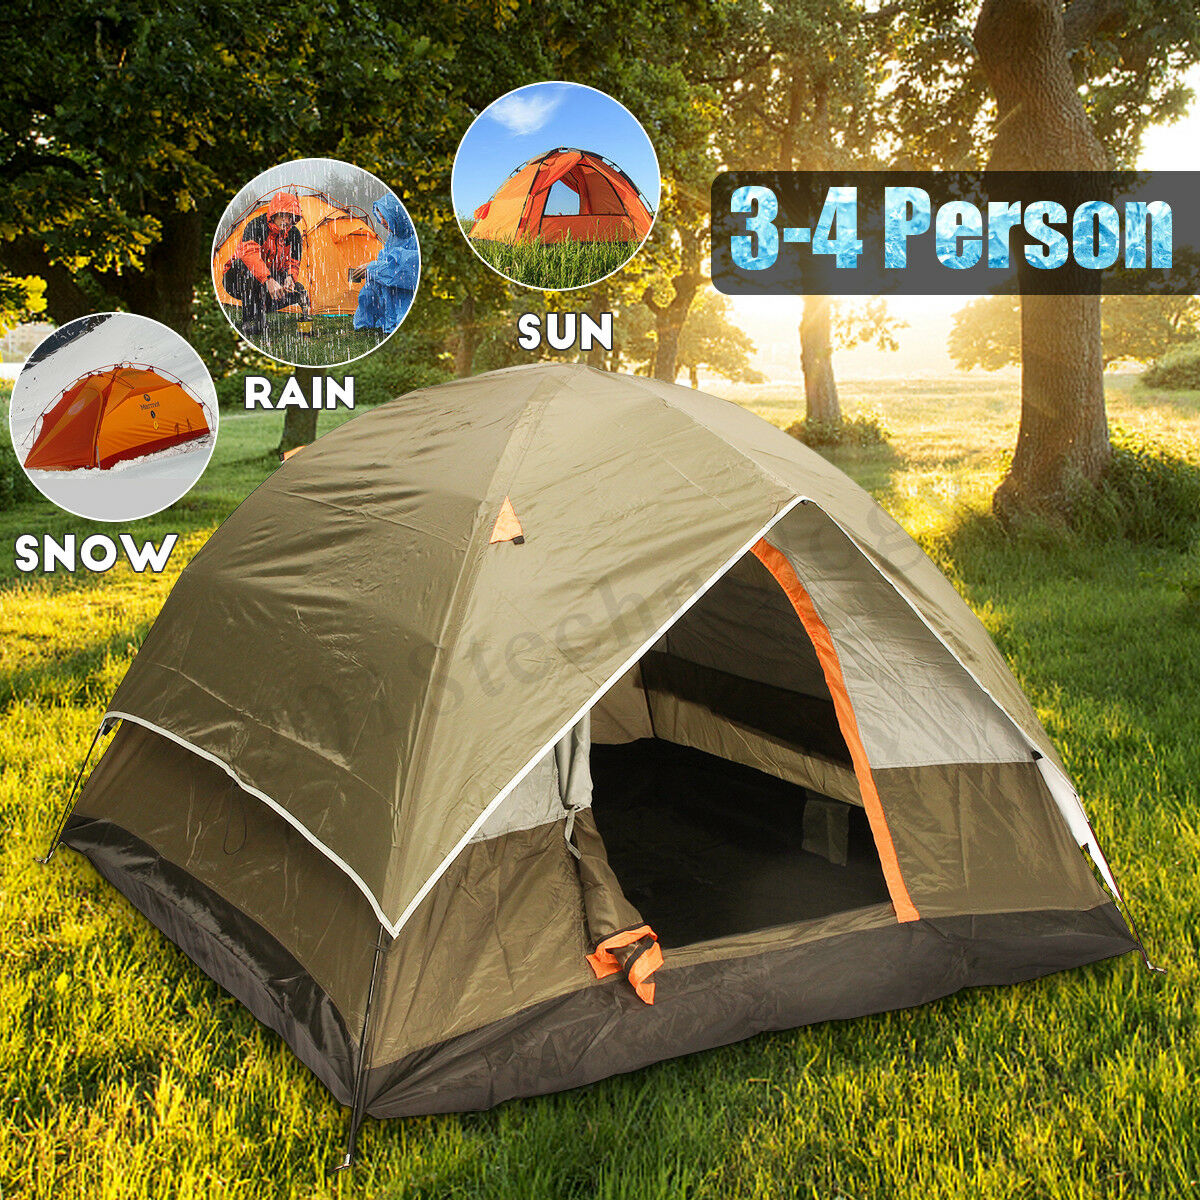 Trip 4 Person Double-layer Camping Tent Strong Waterproof Family Outdoor